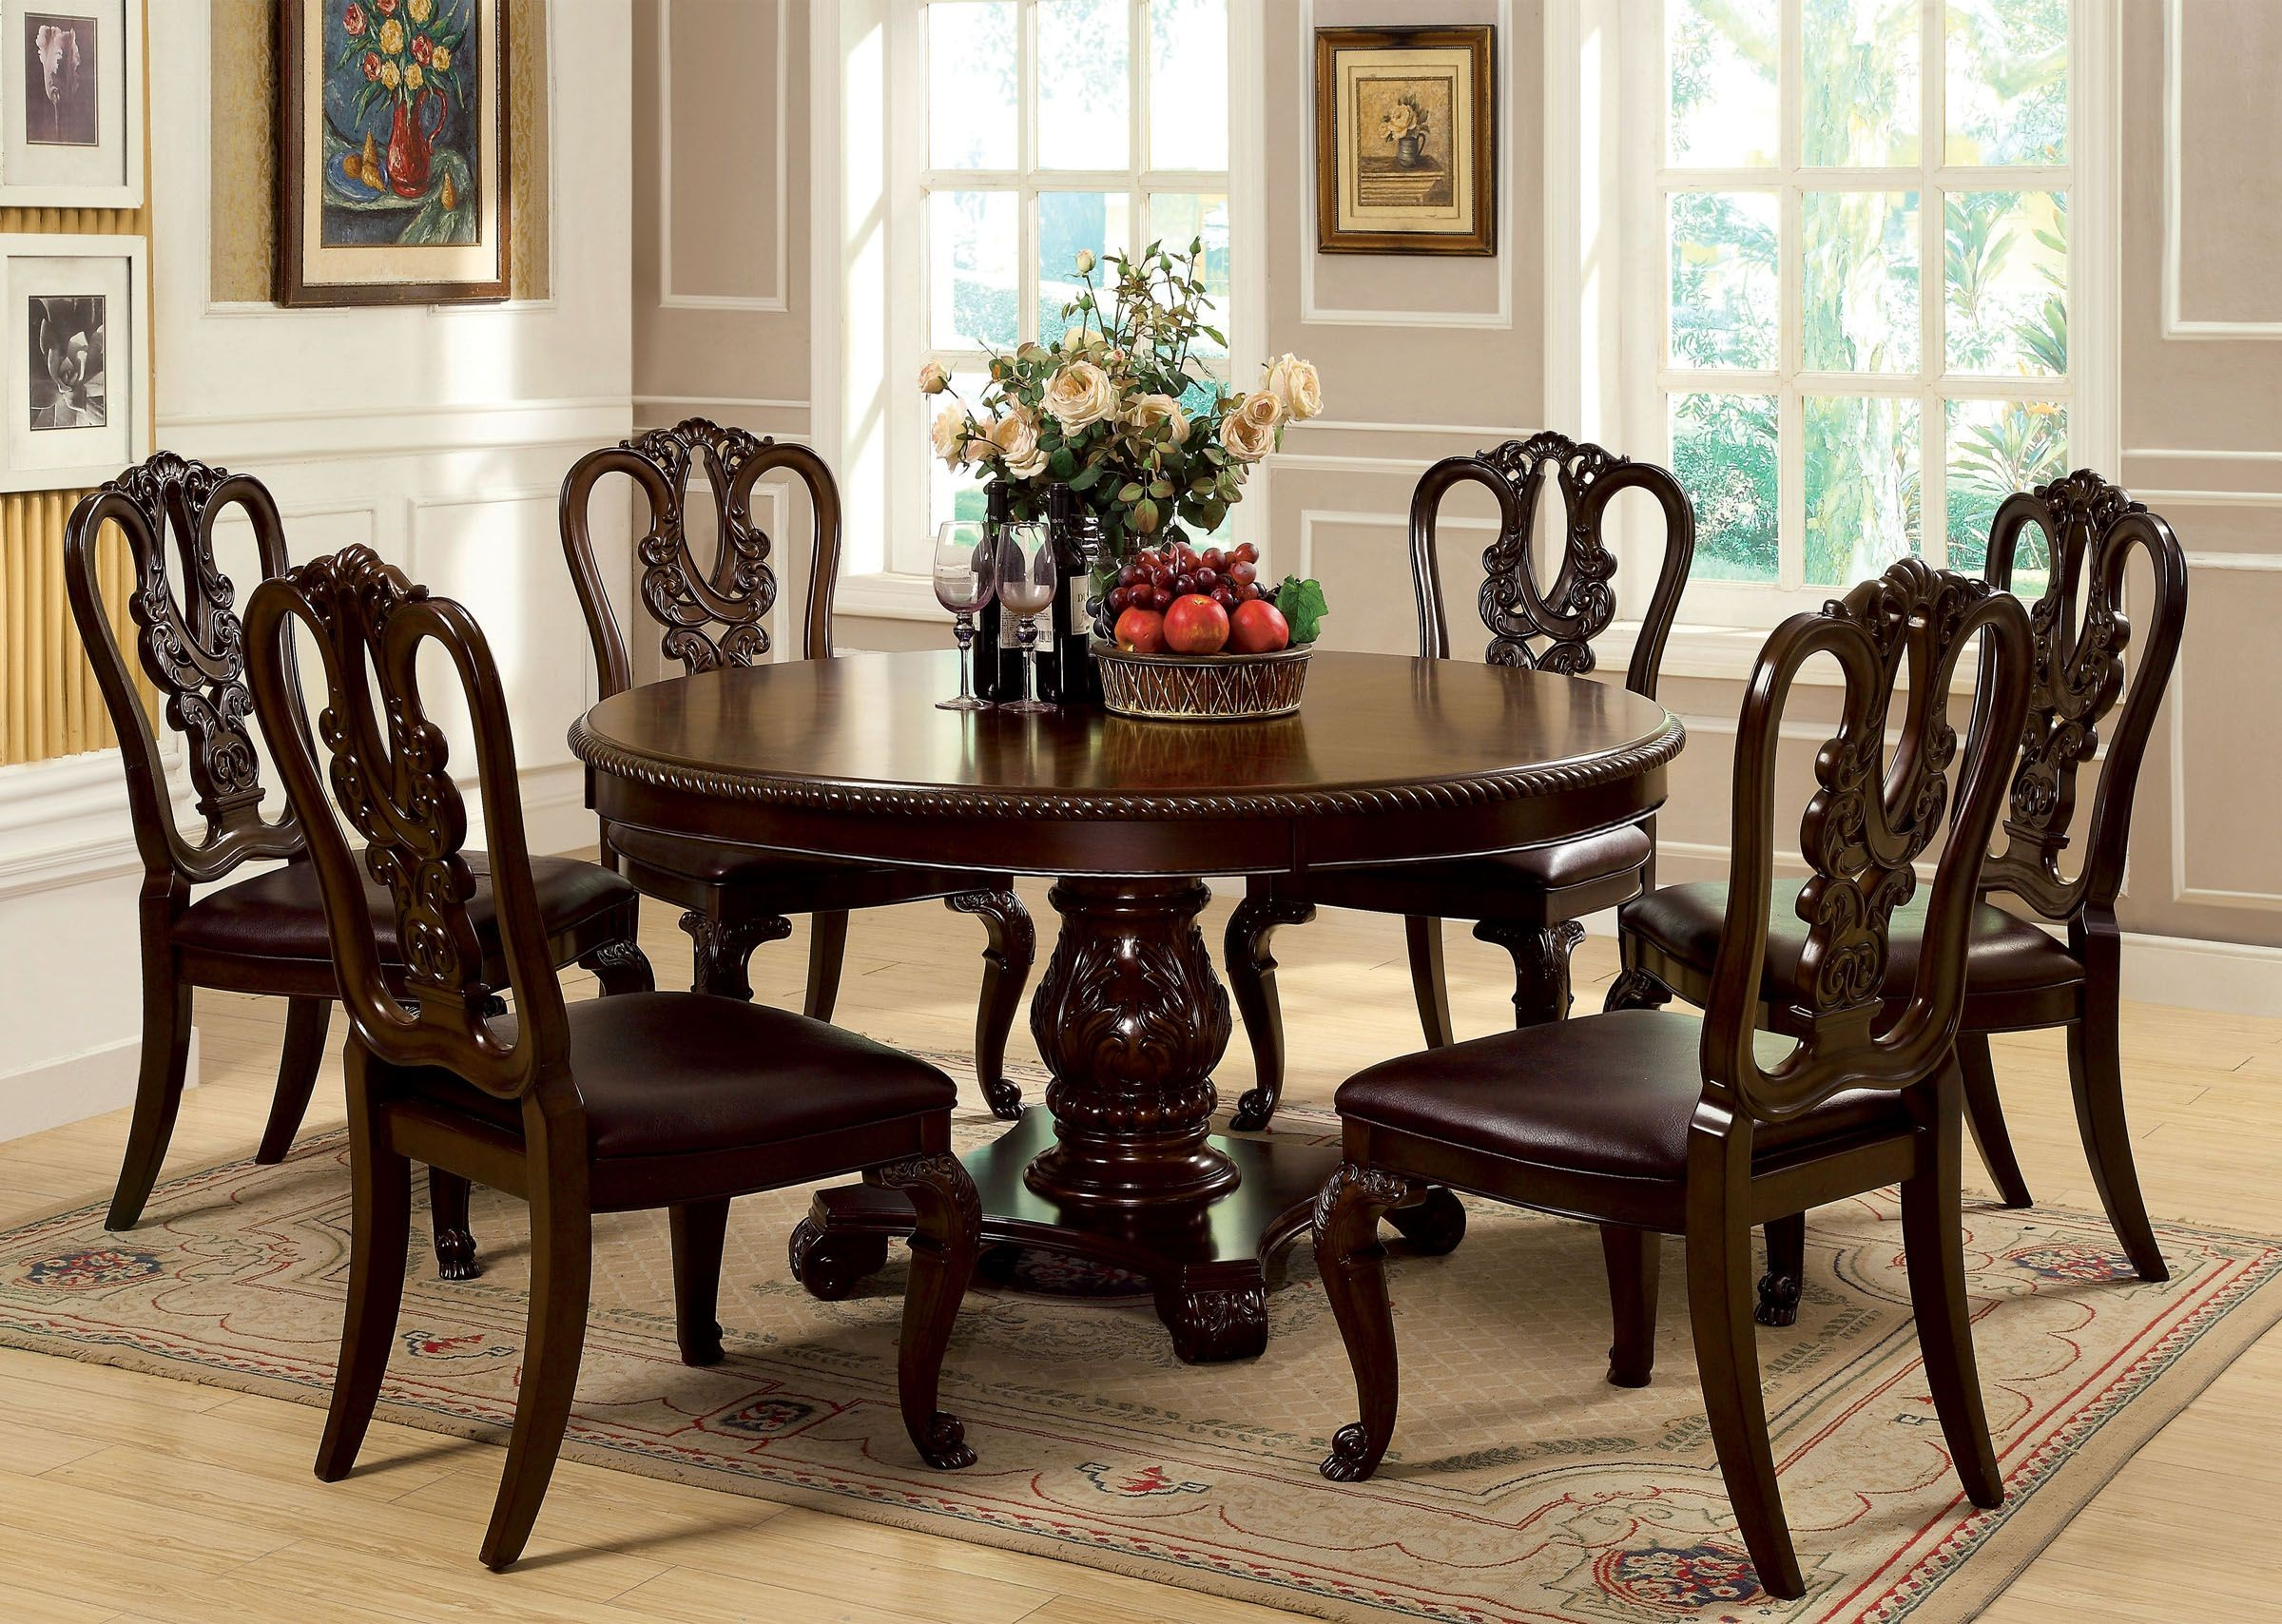 Bellagio Brown Cherry Round Pedestal Dining Room Set from  : cm3319rt w1 from colemanfurniture.com size 2400 x 1708 jpeg 999kB